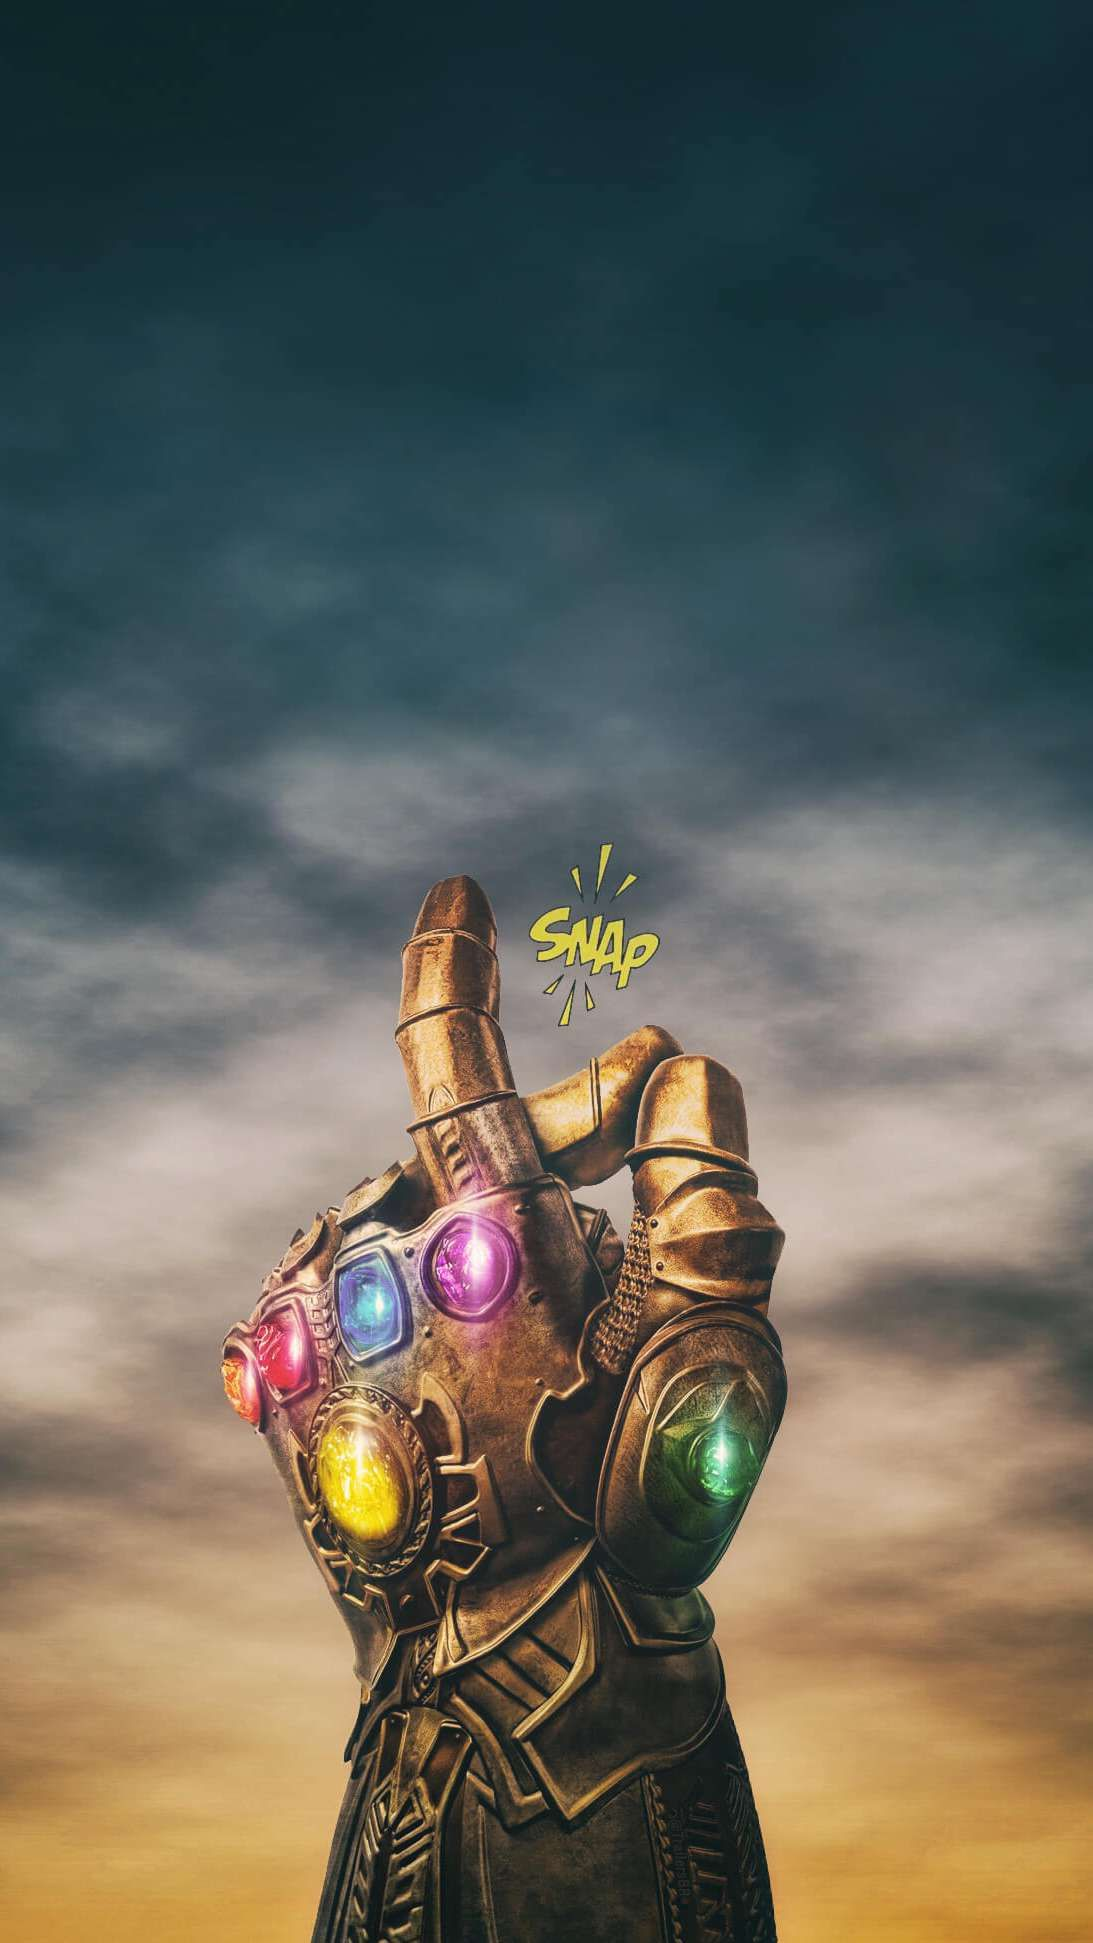 21 Thanos Snap Wallpapers On Wallpapersafari